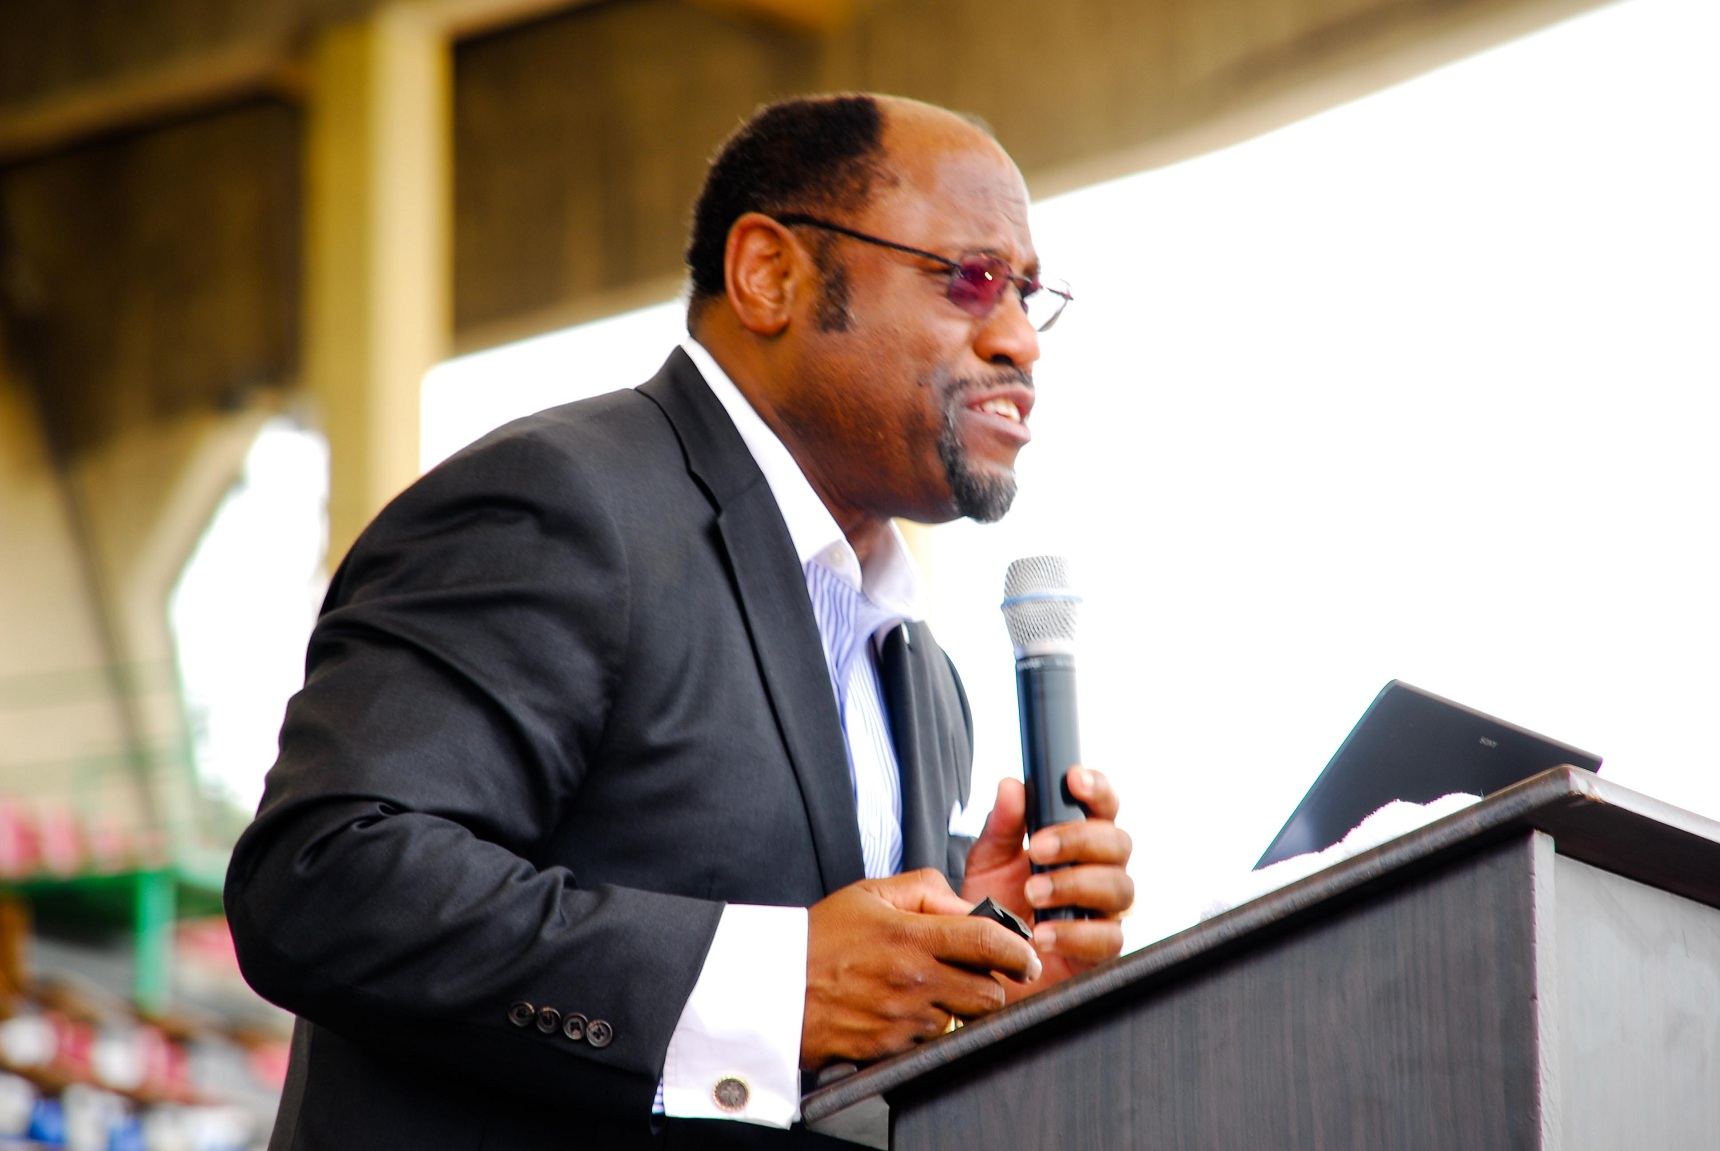 Dr myles munroe dead in bahamas plane crash youtube